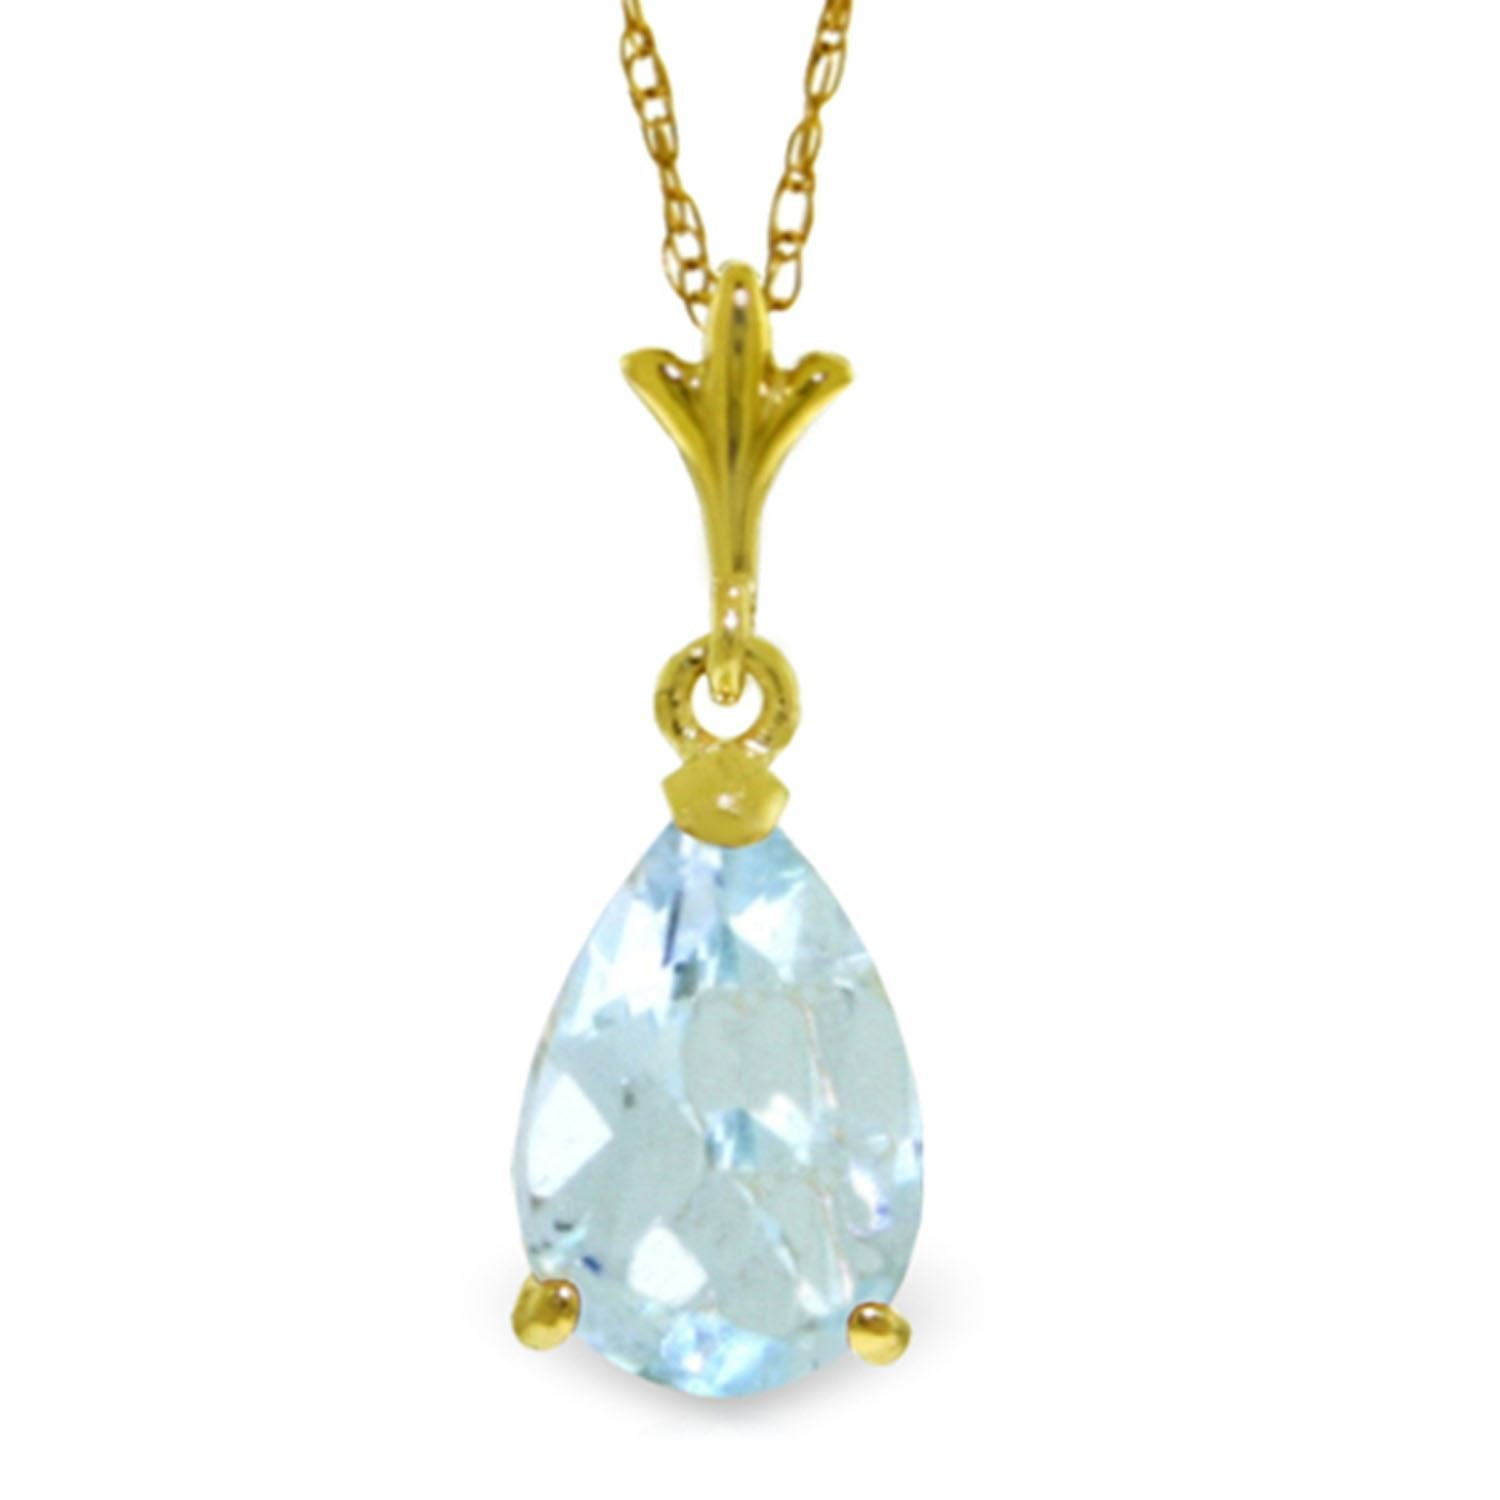 ALARRI 1.5 Carat 14K Solid Gold Duration Of Love Aquamarine Necklace with 18 Inch Chain Length